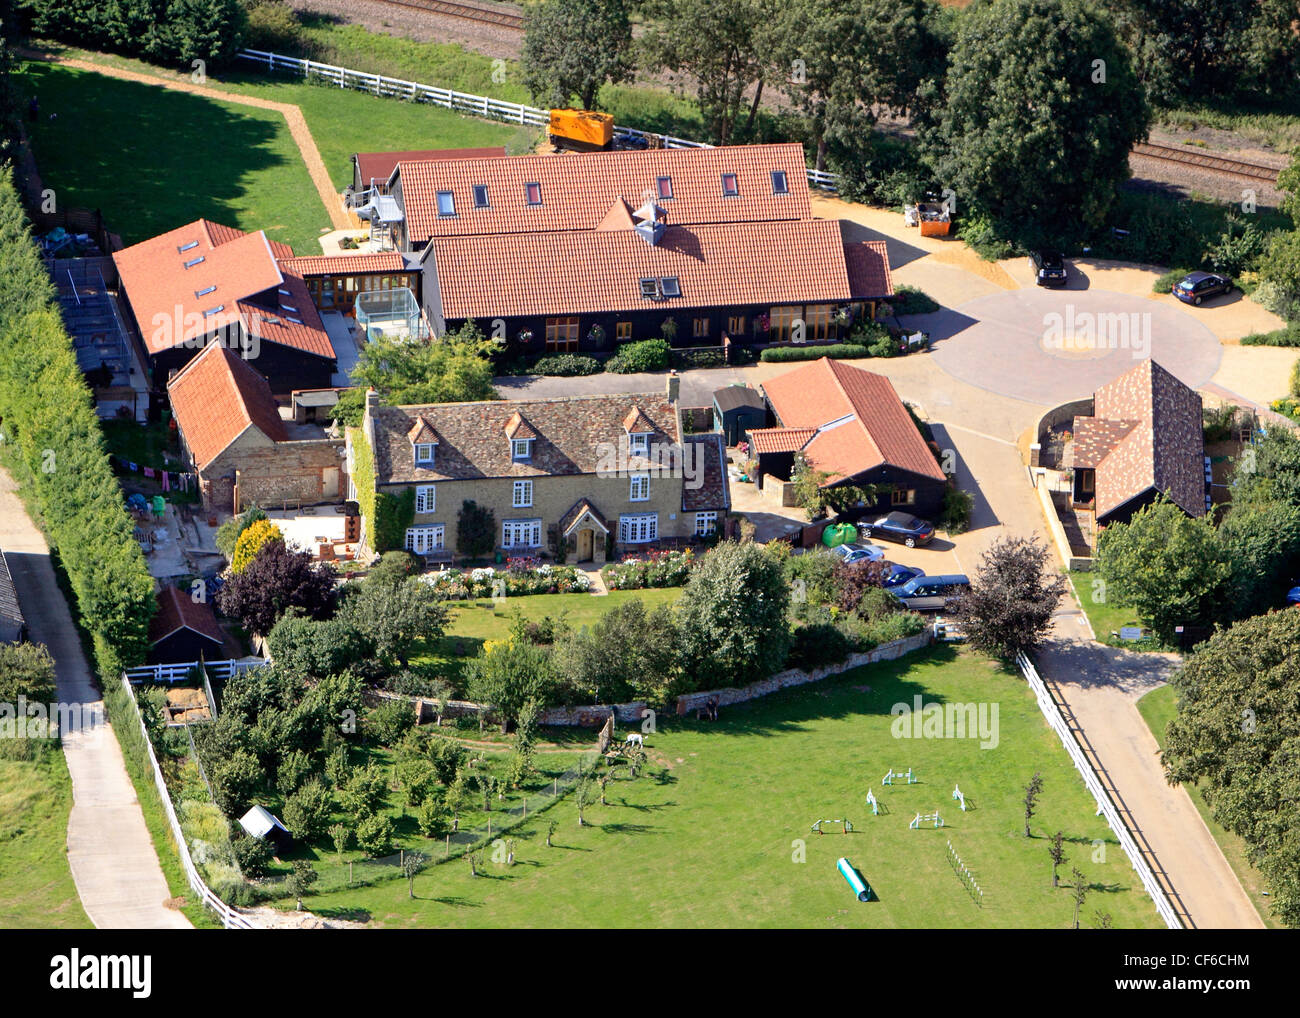 aerial view of a veterinary clinic in the country, a rural enterprise - Stock Image